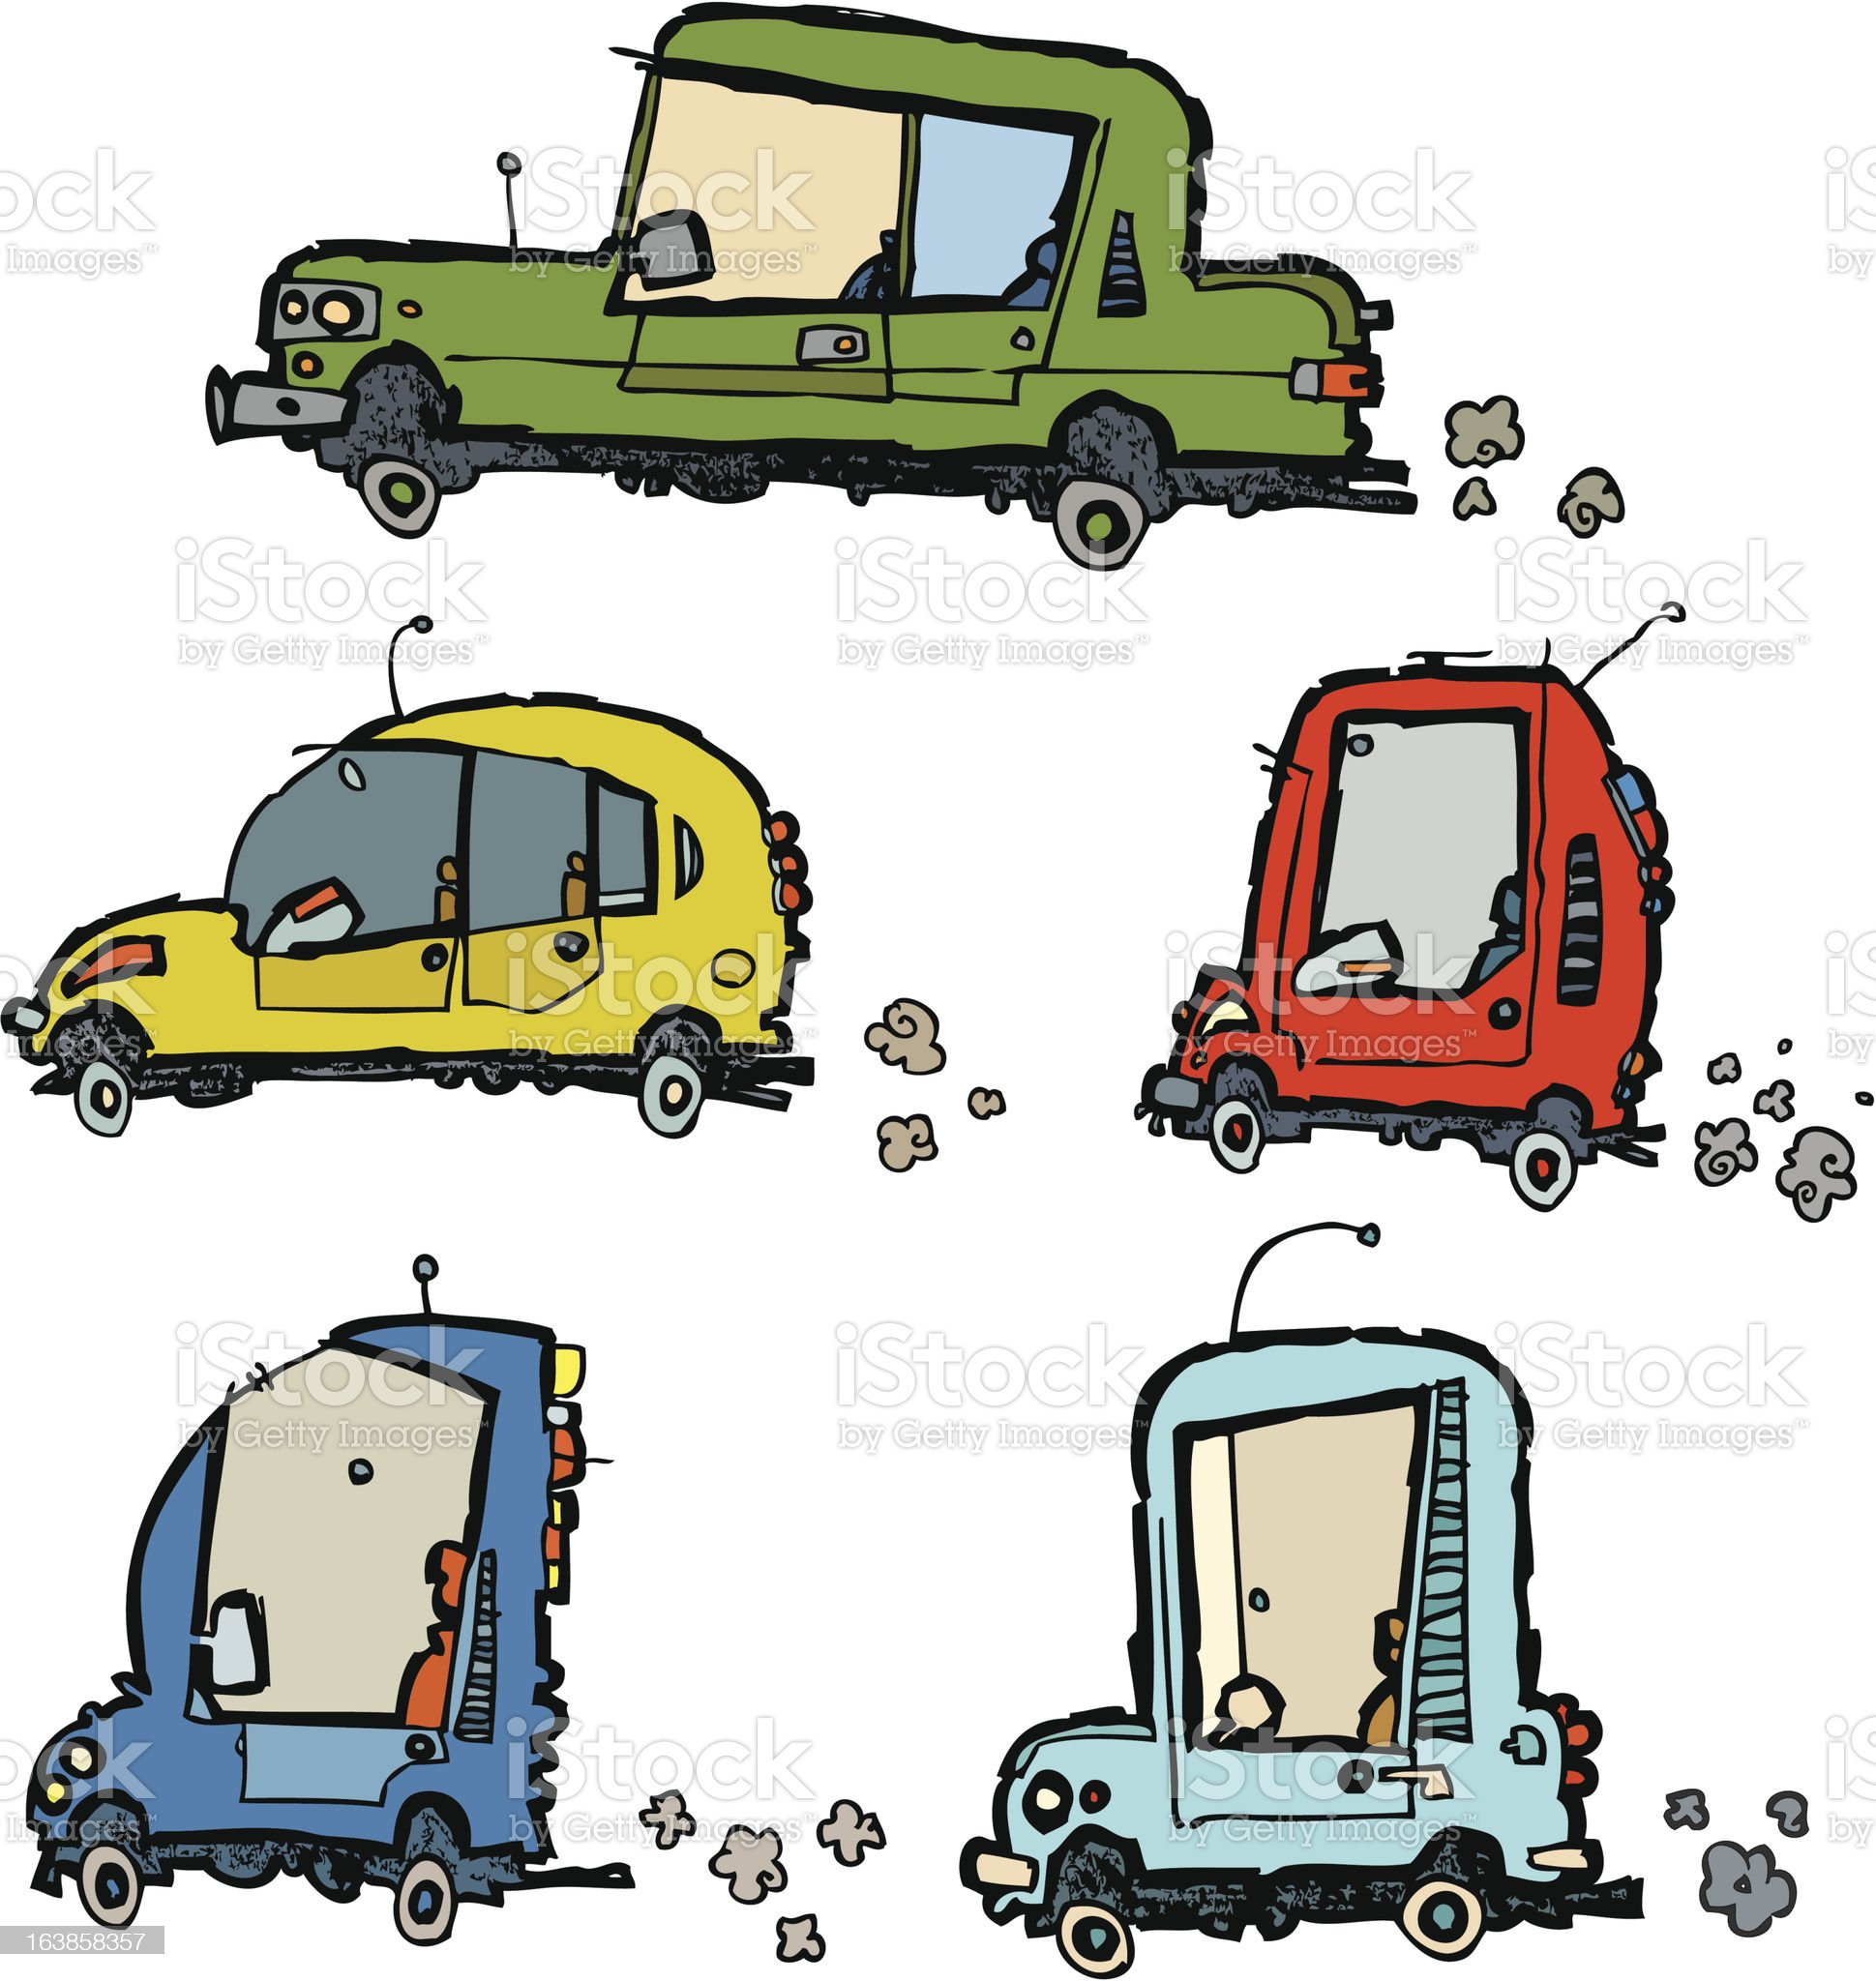 funny vector cars royalty-free stock vector art